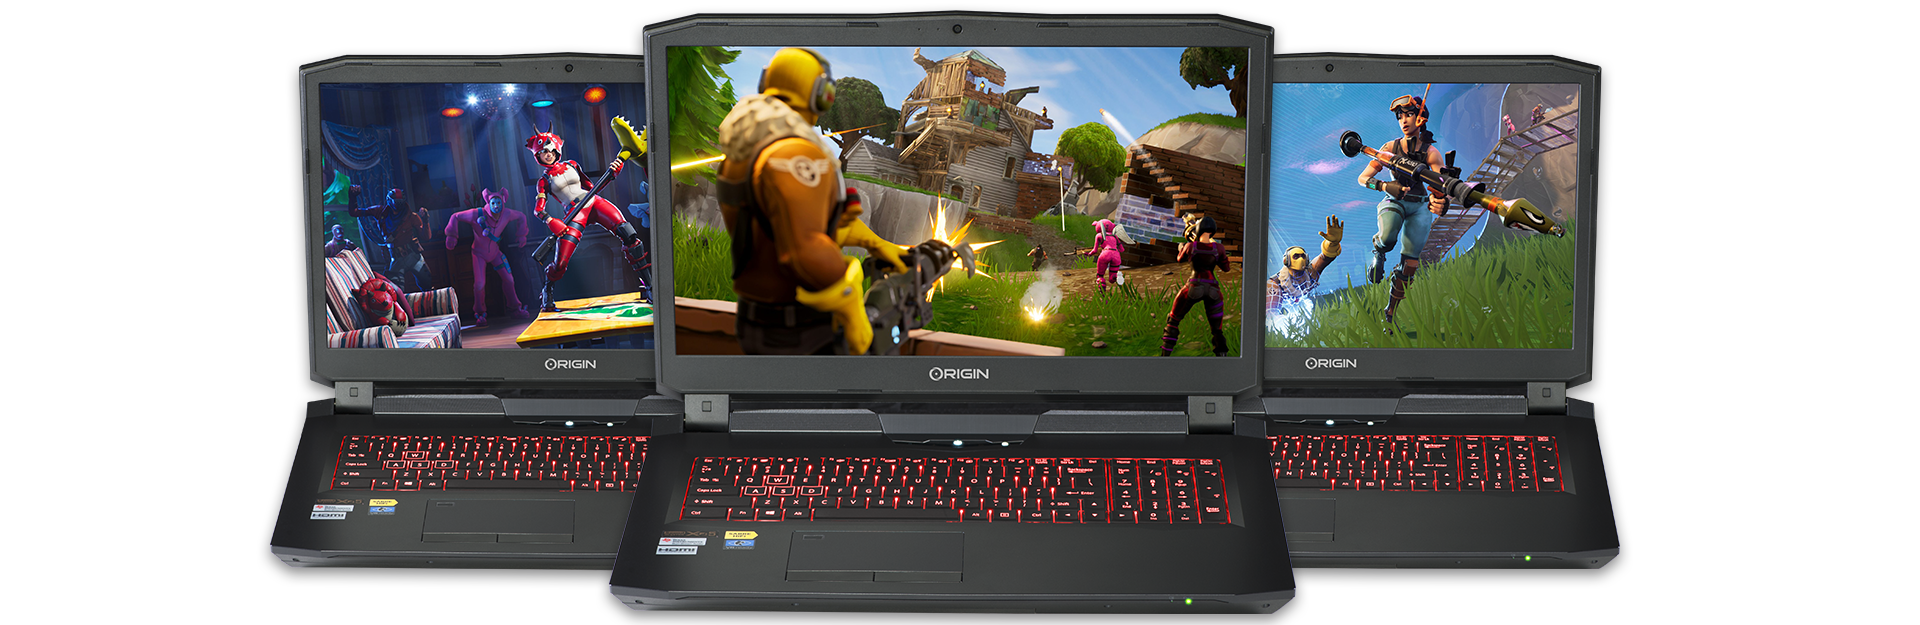 Eon17 X Gaming Laptop Origin Pc Details And Features Origin Pc